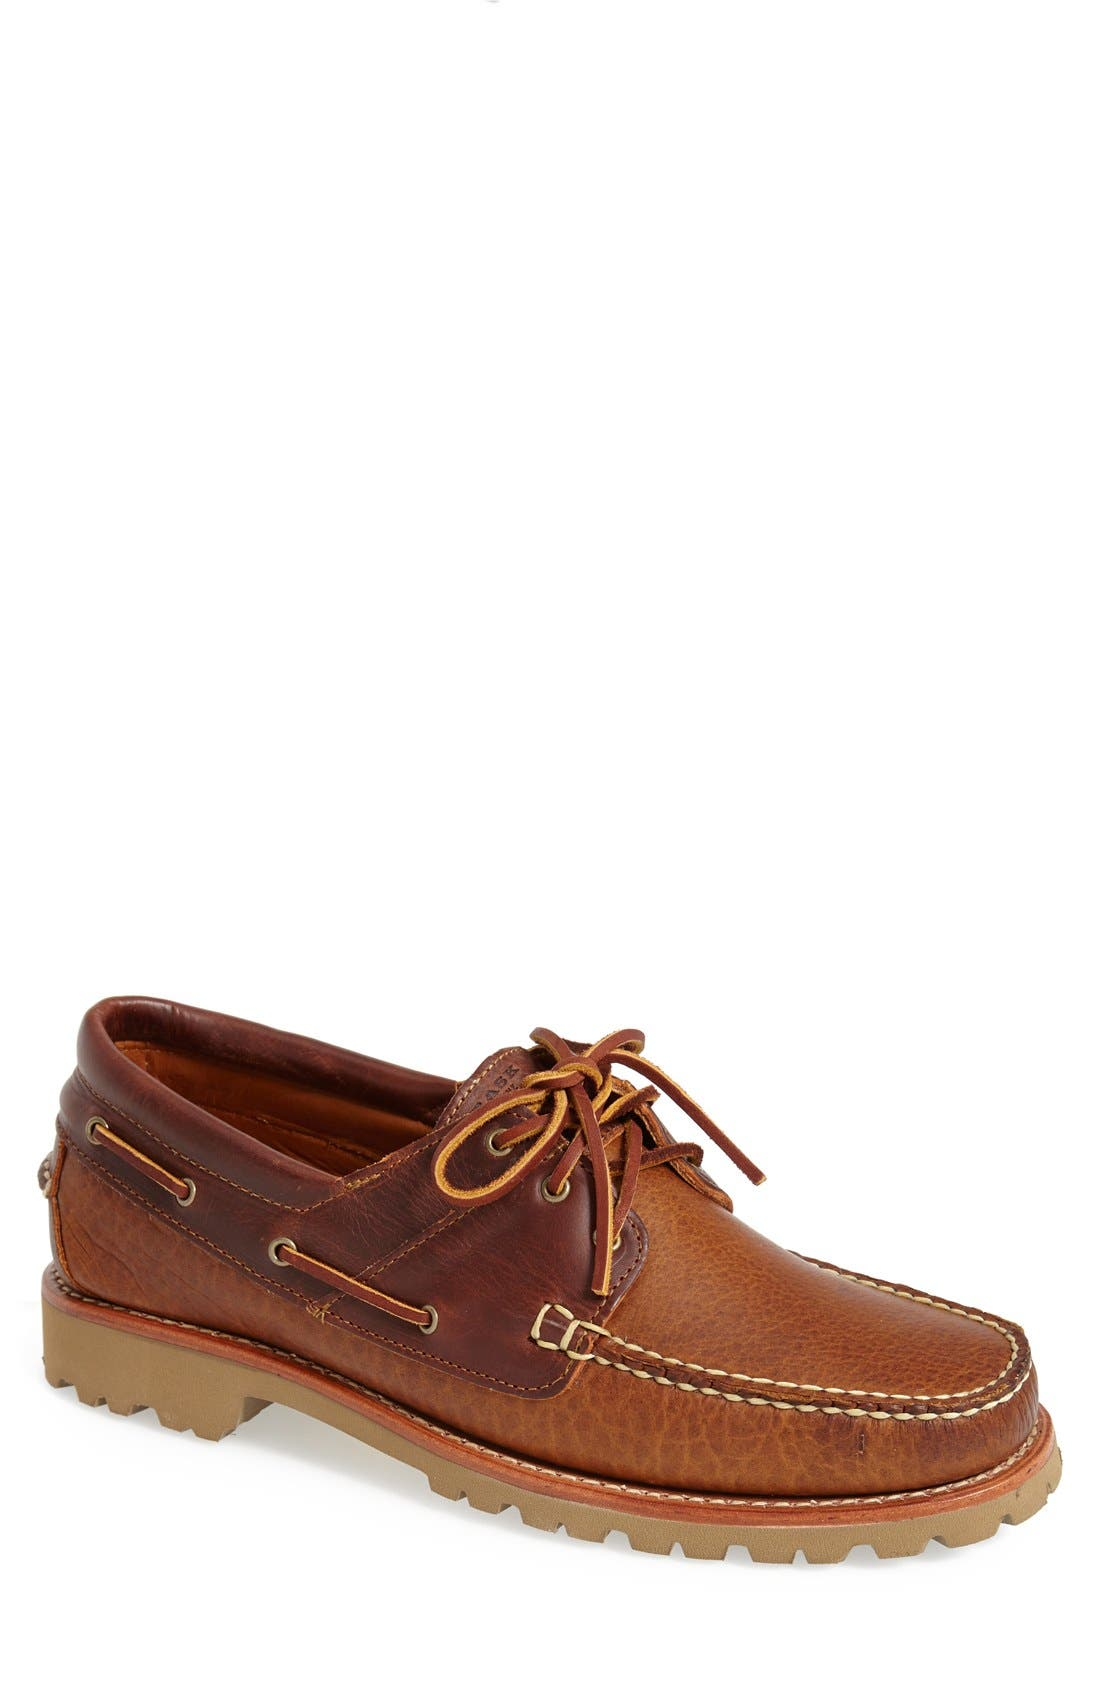 'Custer' Boat Shoe,                         Main,                         color, Whiskey